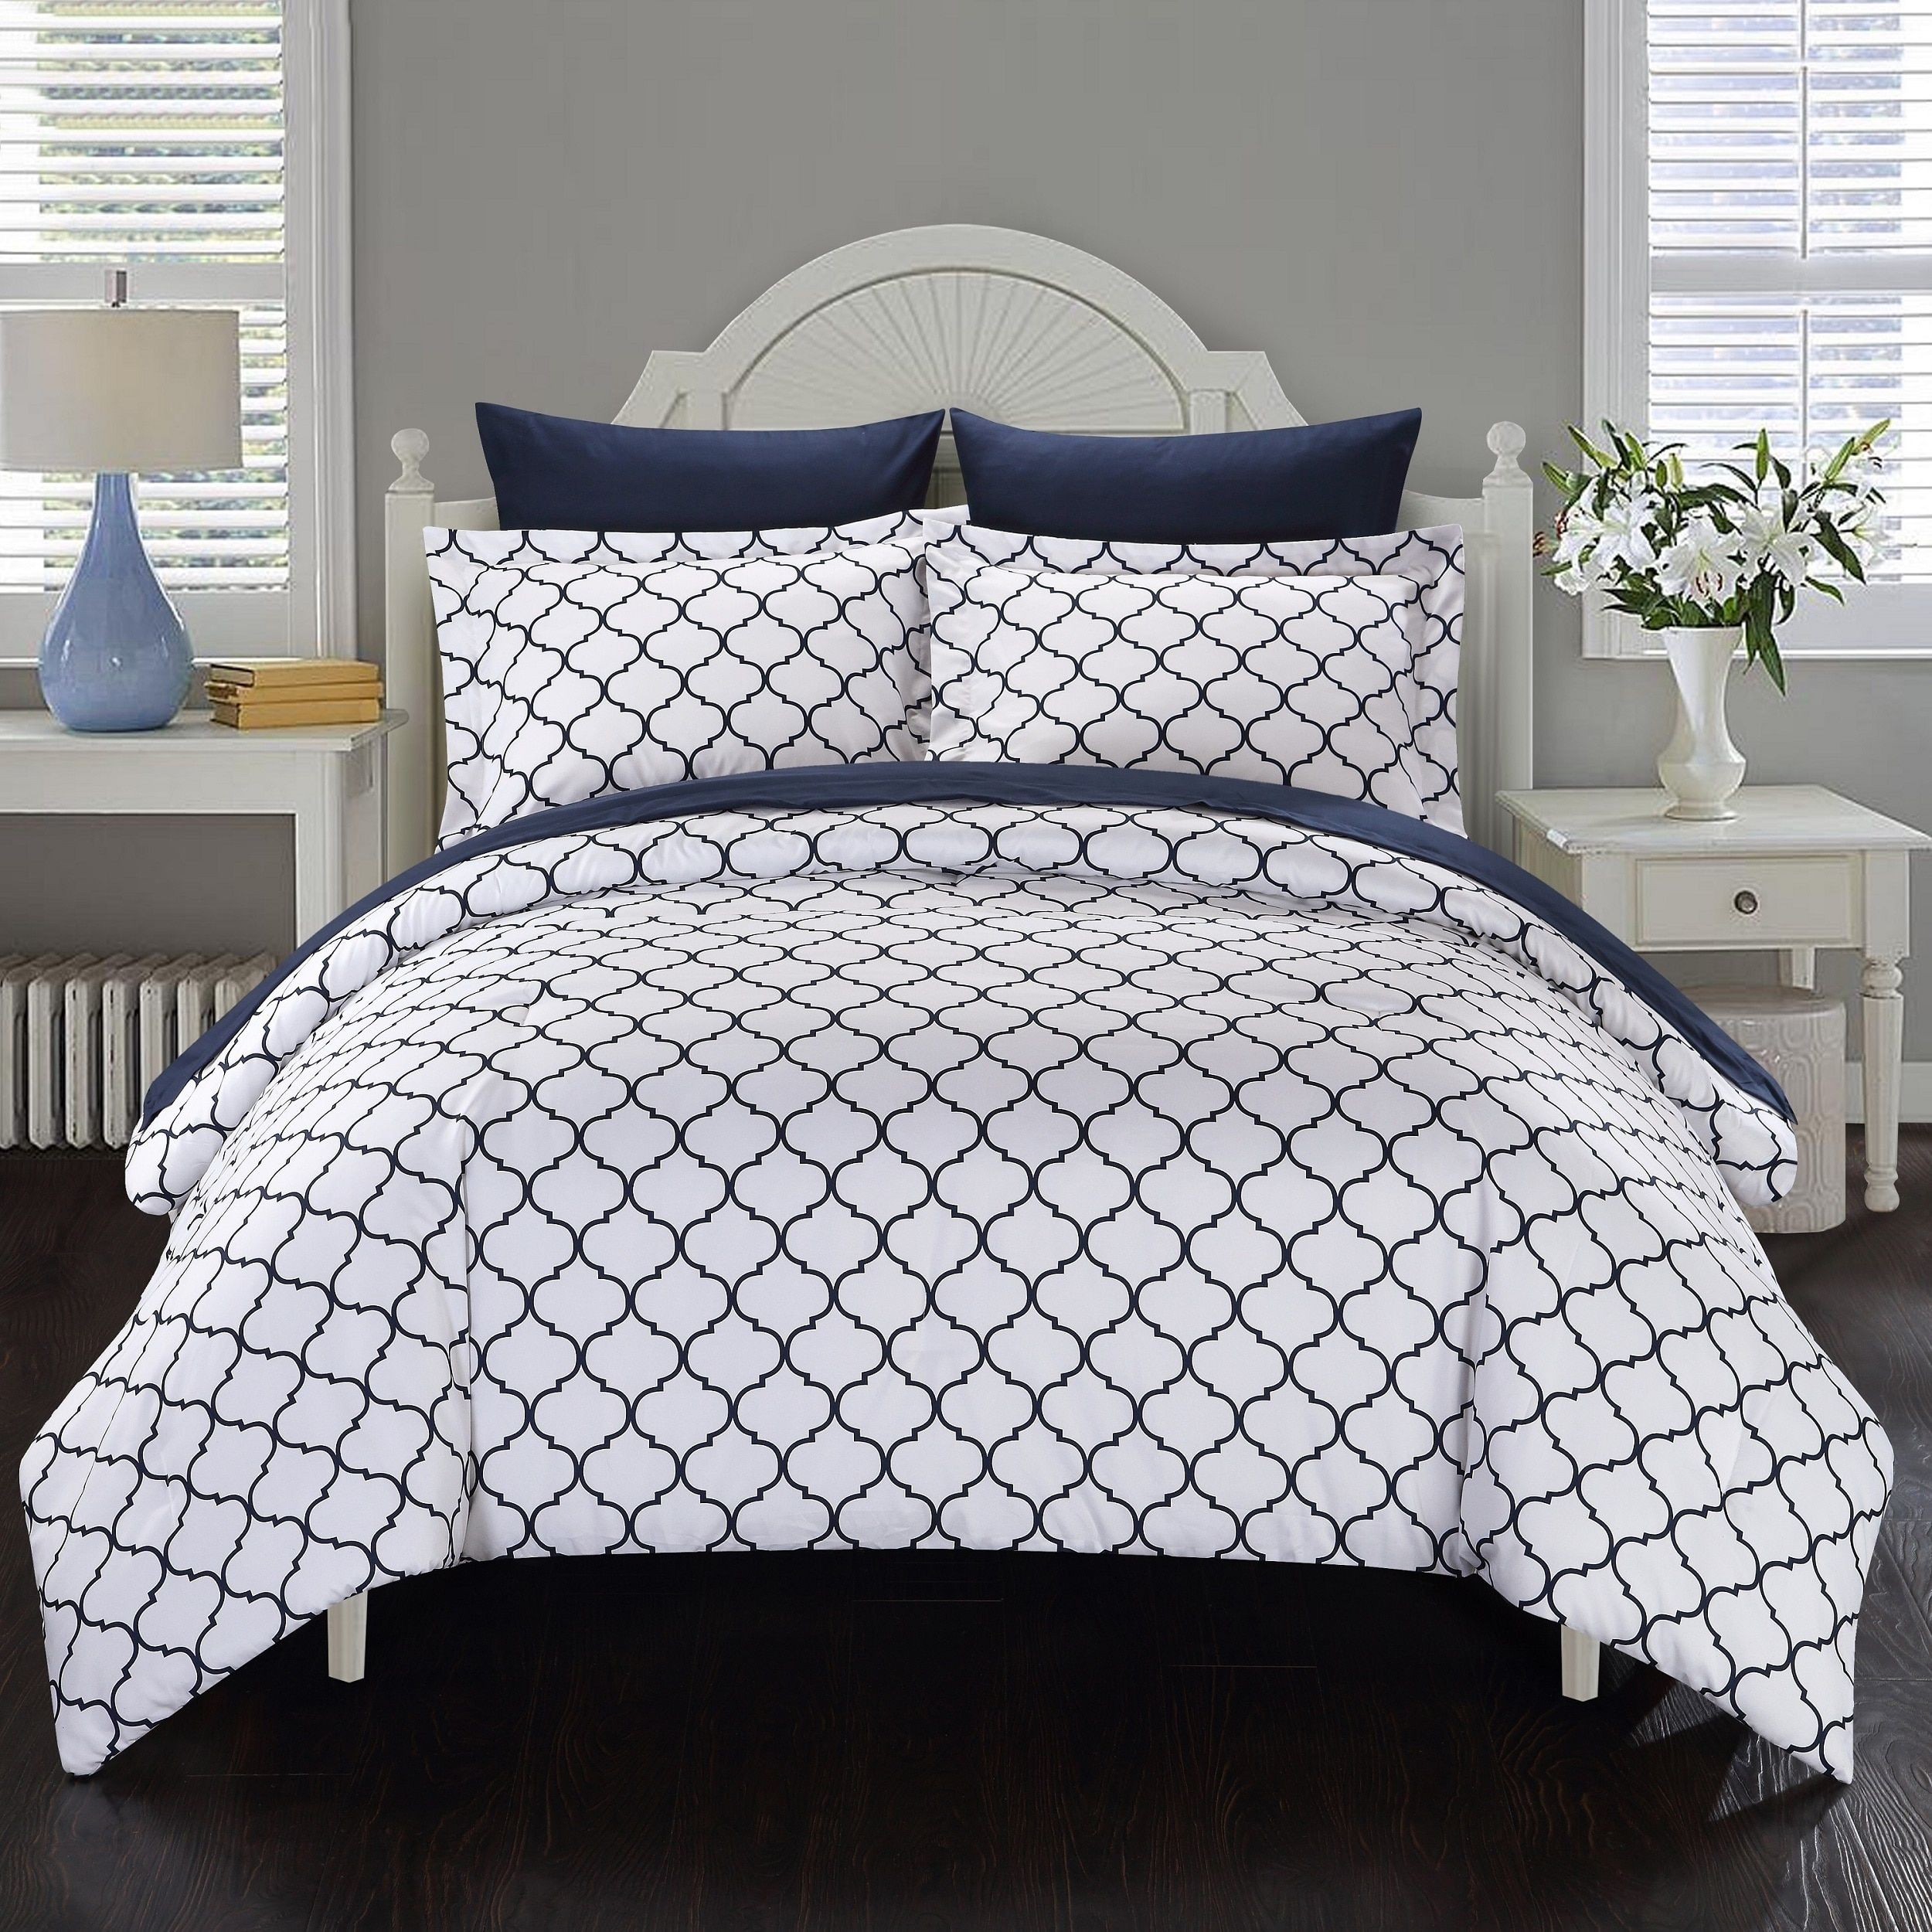 Navy and White forter Set Bedding GIFT IDEAS